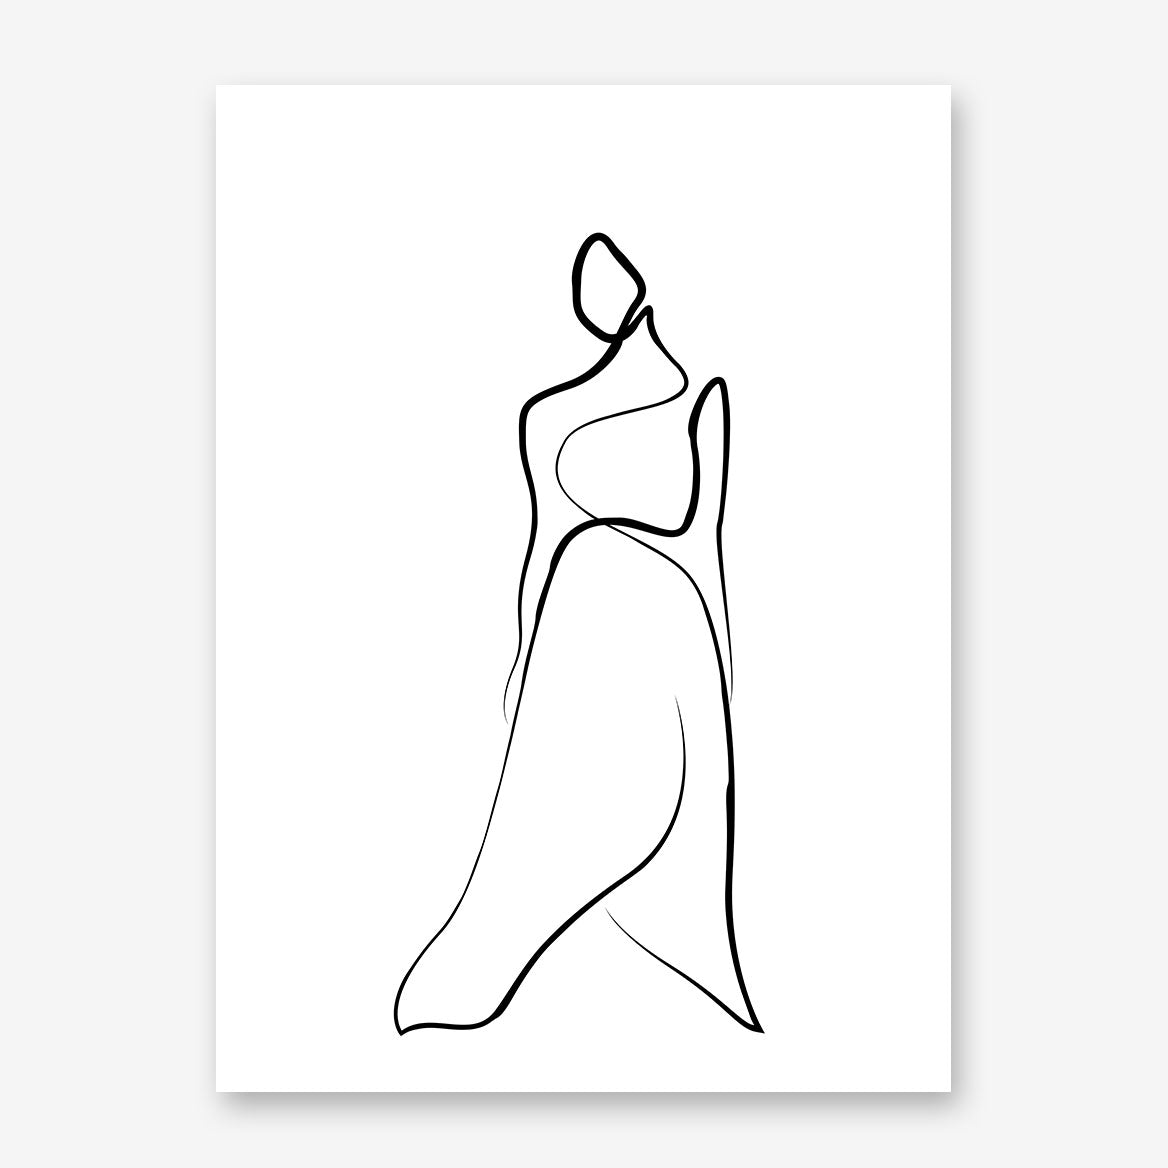 Abstract line art poster print with a woman wearing a long dress.